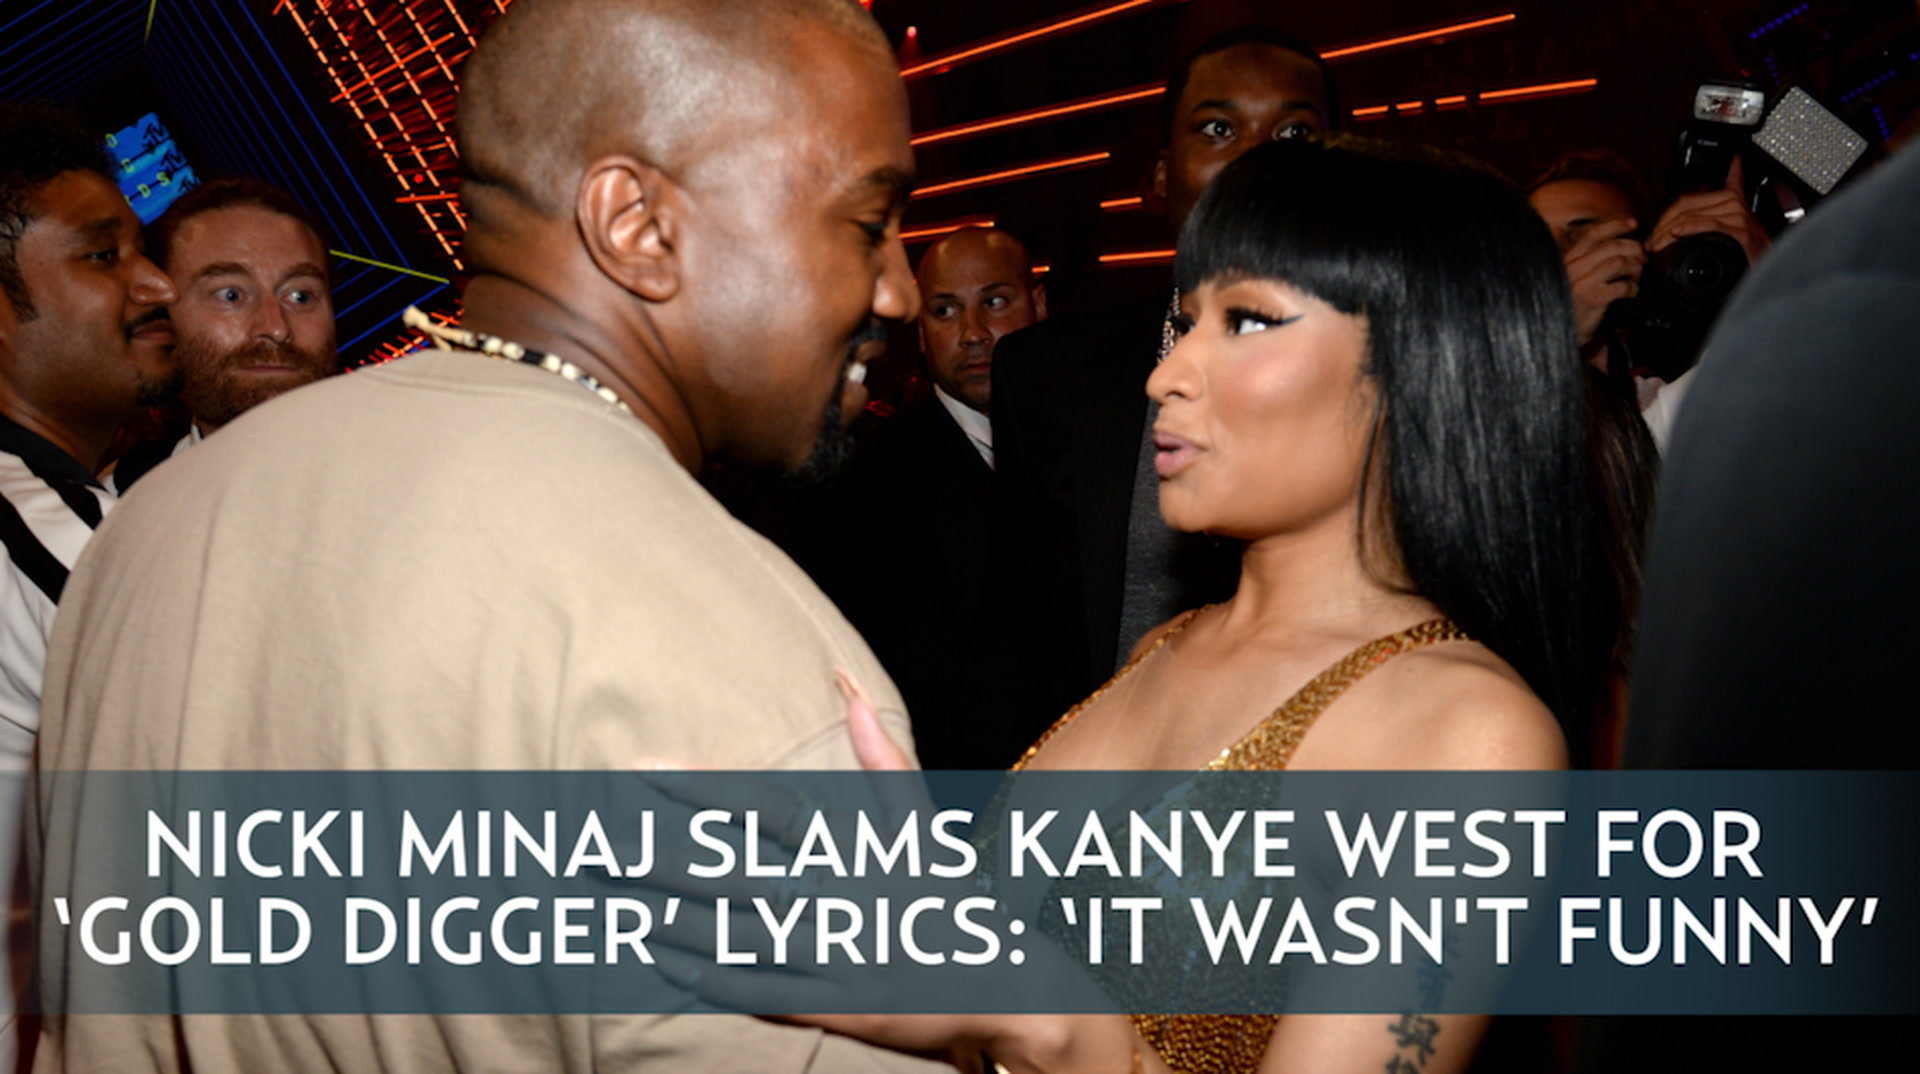 Nicki Minaj I Wasnt Slamming Kanye Wests Gold Digger Lyrics